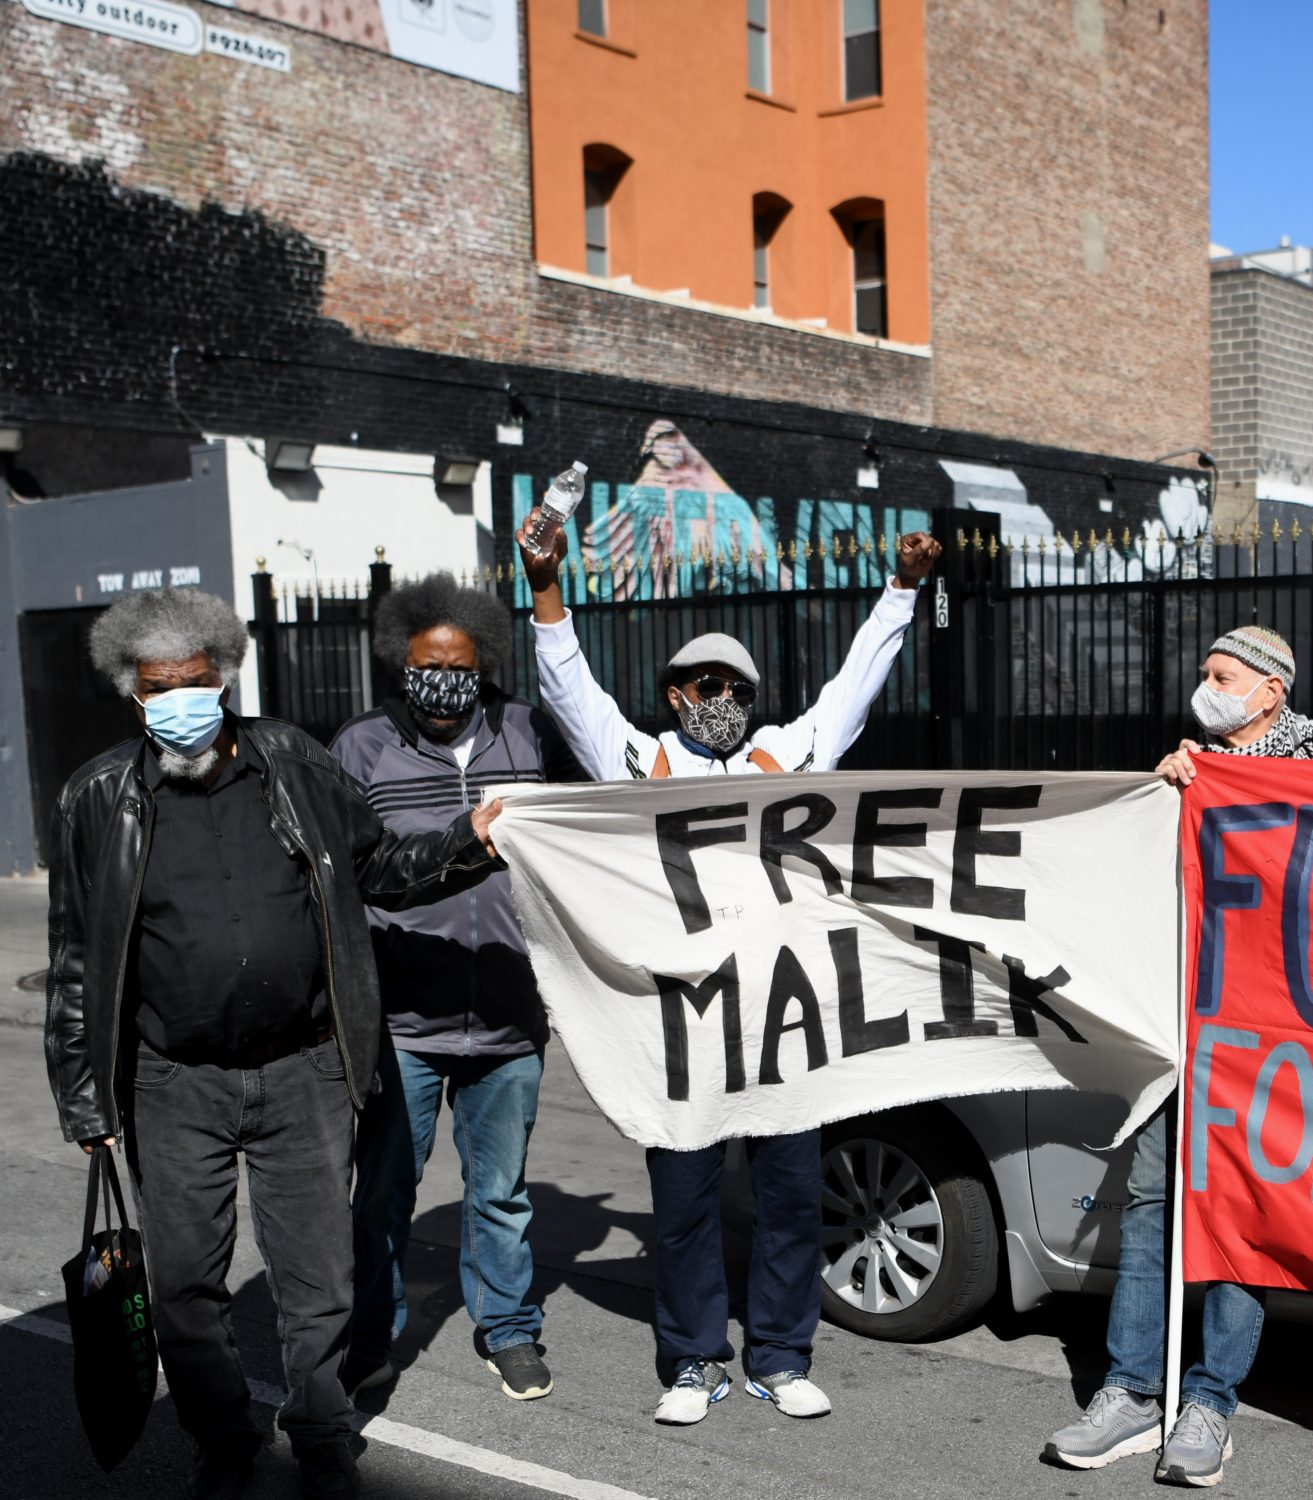 Free-Malik-rally-111-Taylor-Gerald-Smith-Arthur-League-unk-Charlie-Hinton-030721-by-Johnnie-Burrell, Journalist detained at GEO Group halfway house faces retaliation for exposing COVID-19 outbreak, Local News & Views